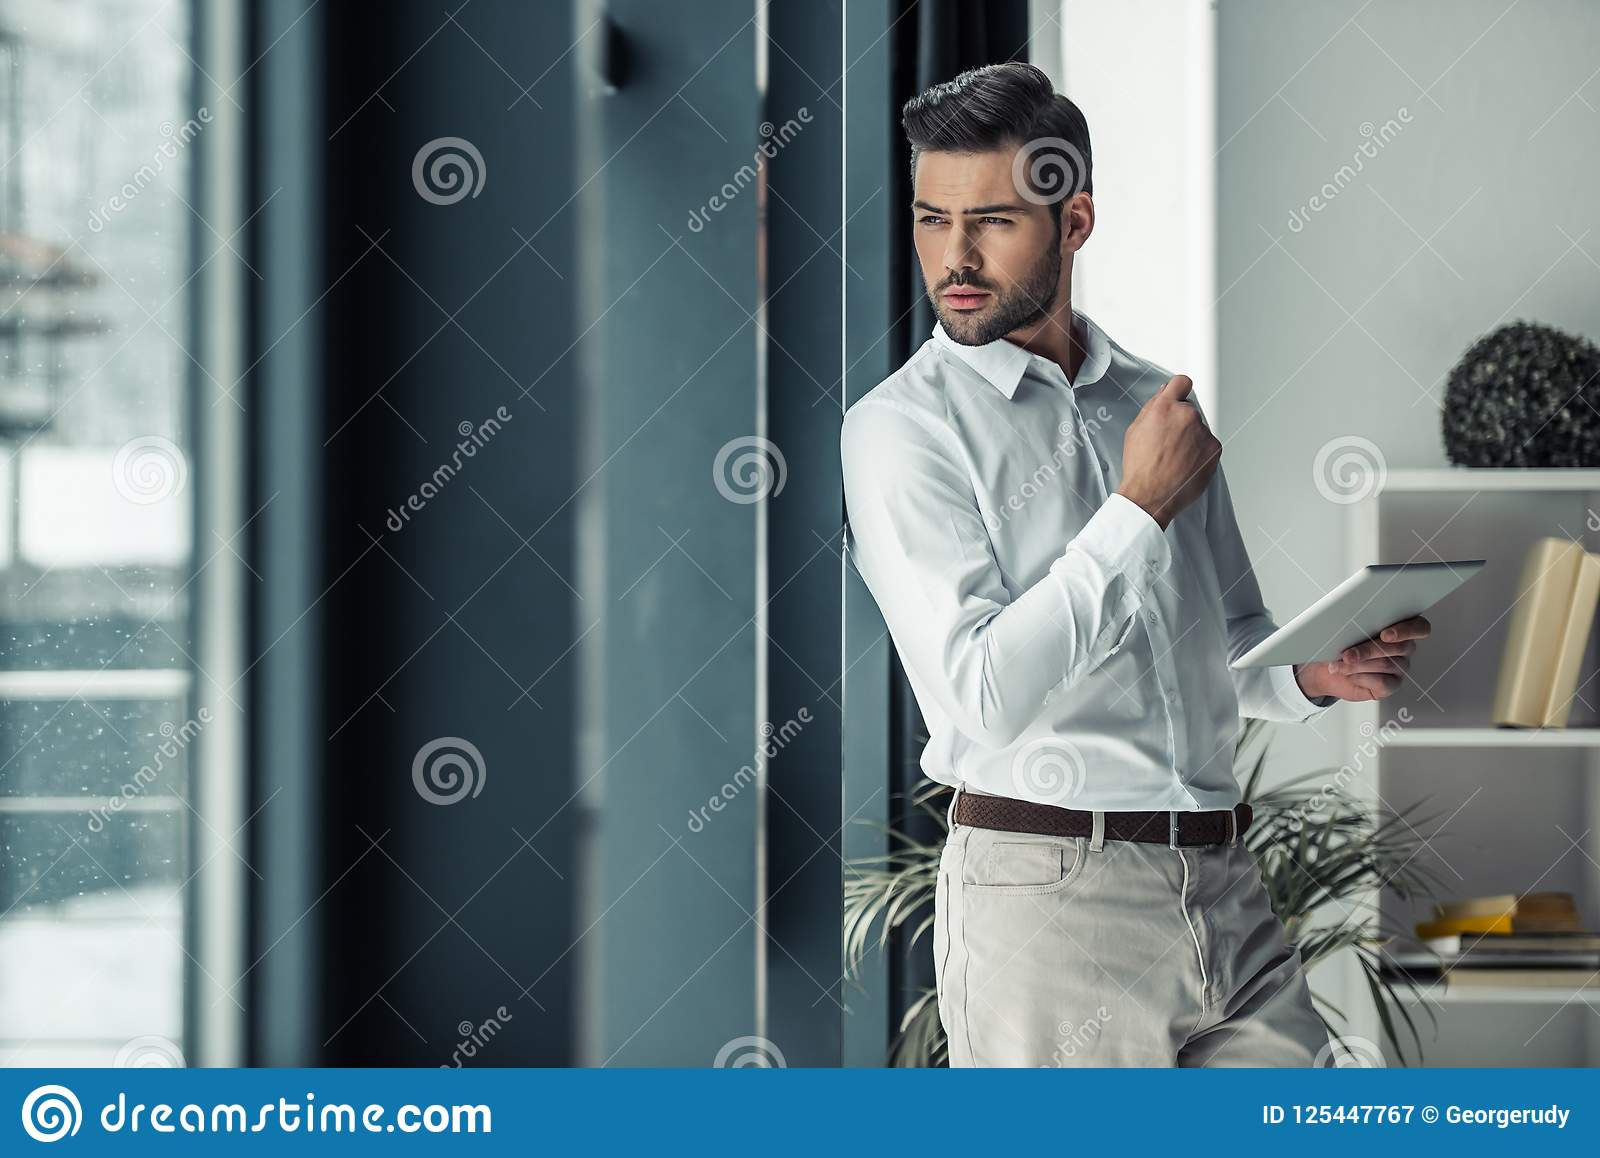 Download Handsome Businessman In Office Stock Image - Image of businessman, office: 125447767